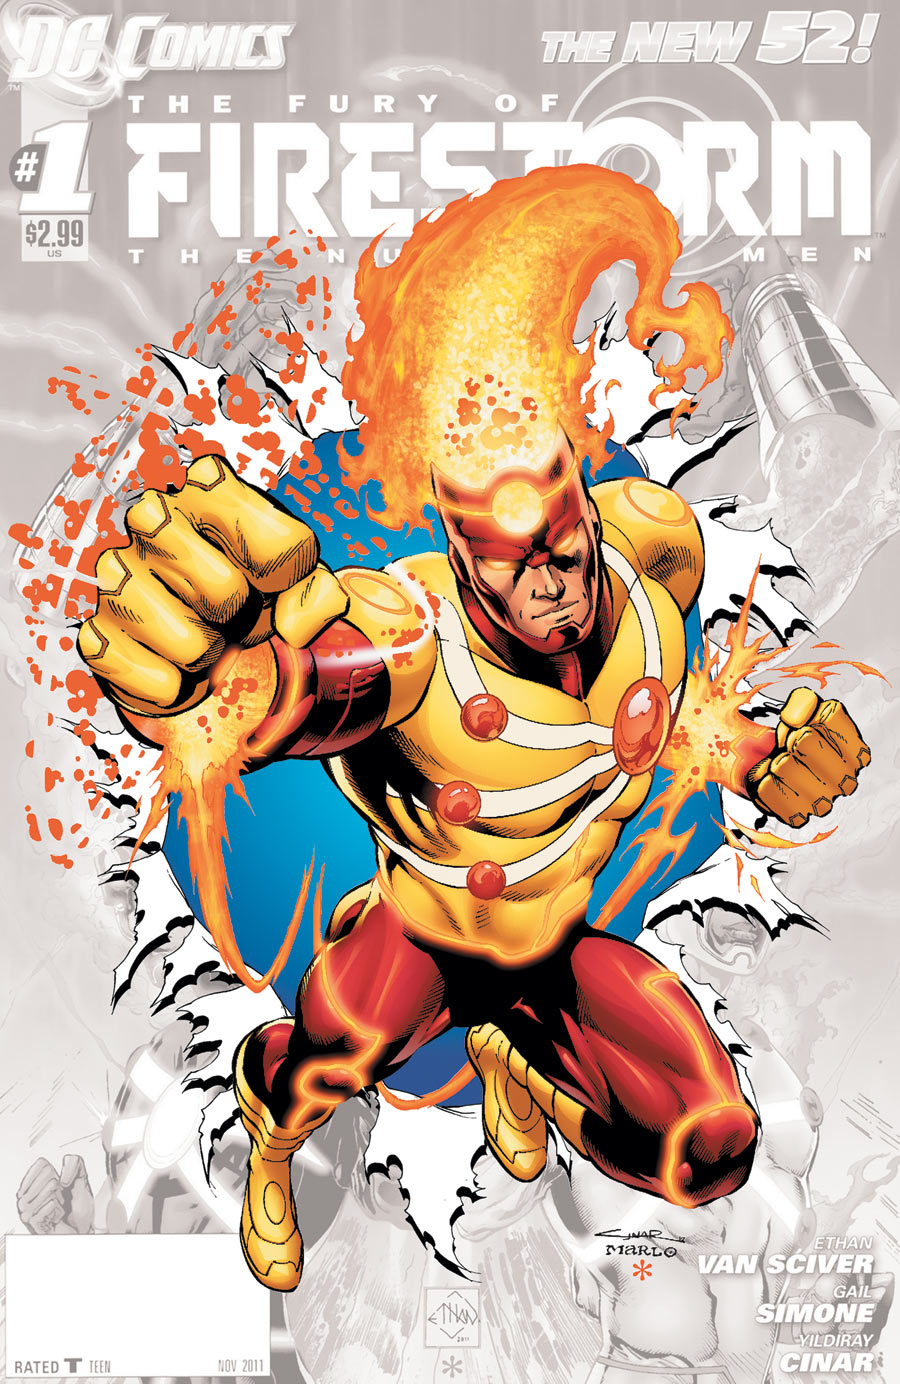 Fury of Firestorm: The Nuclear Men #0 cover by Yildiray Cinar & Marlo Alquiza